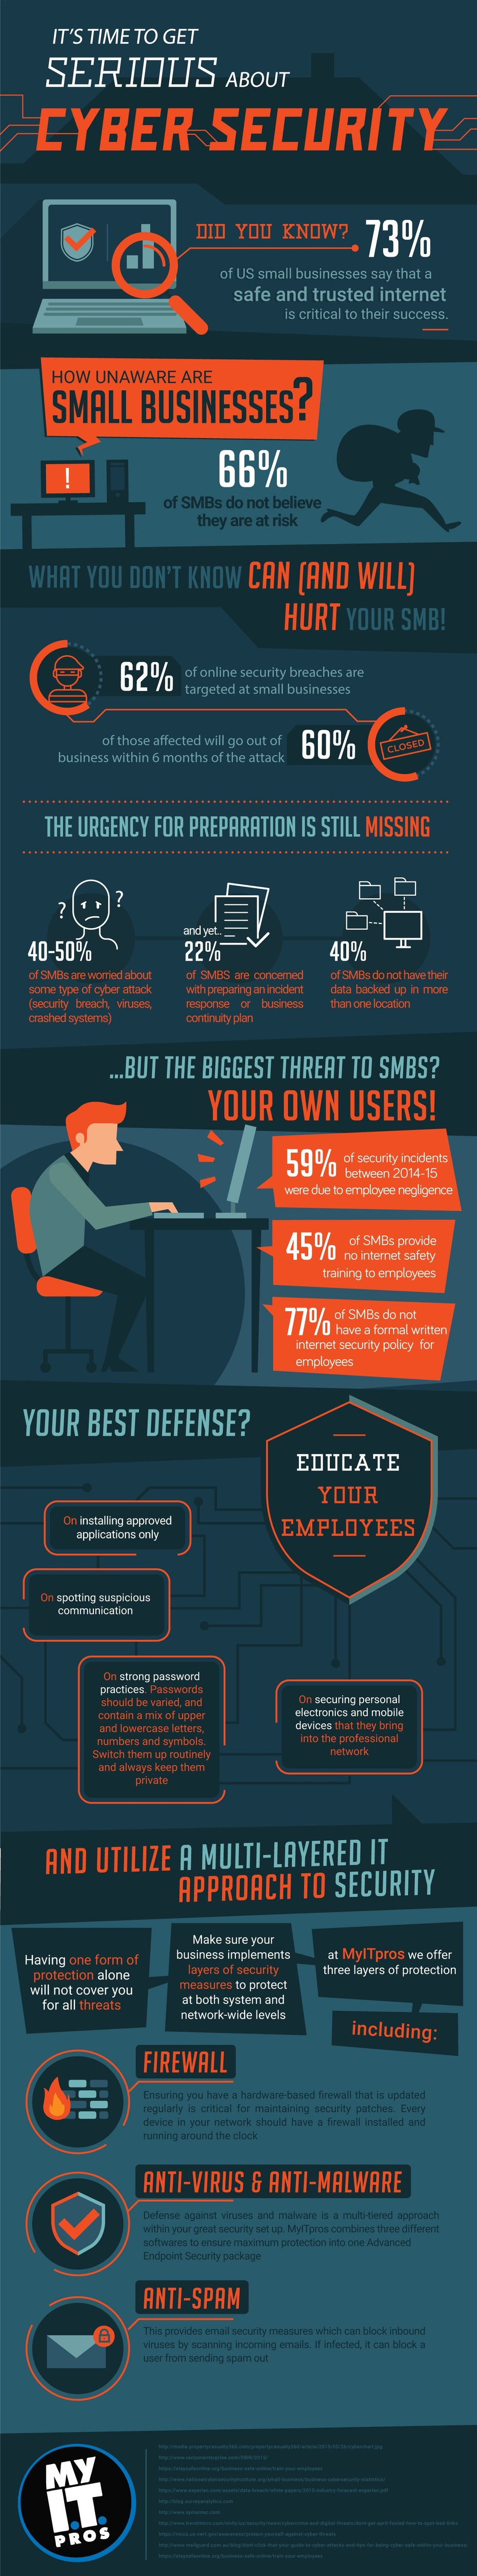 IT Pros infographic